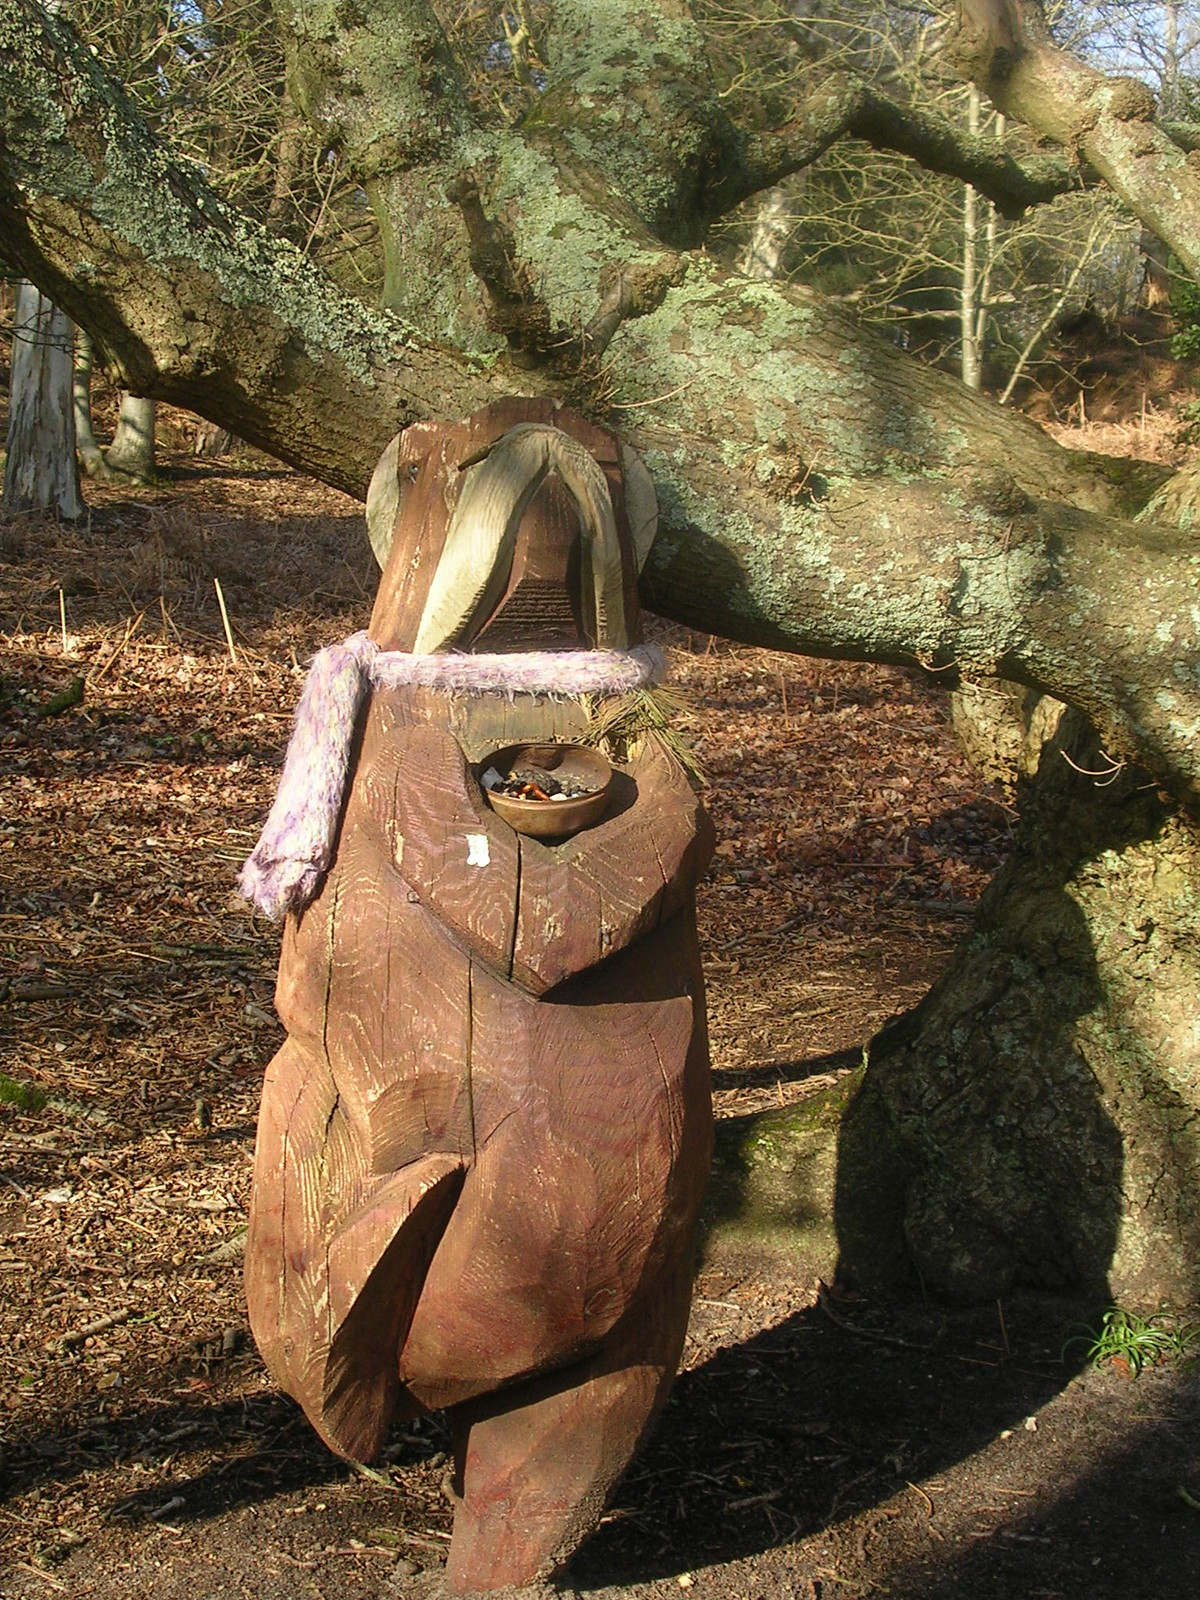 Unexplained bear Opportunistic carved bear, dancing and begging in the woodland. Do the authorities know? Amberley to Pulborough